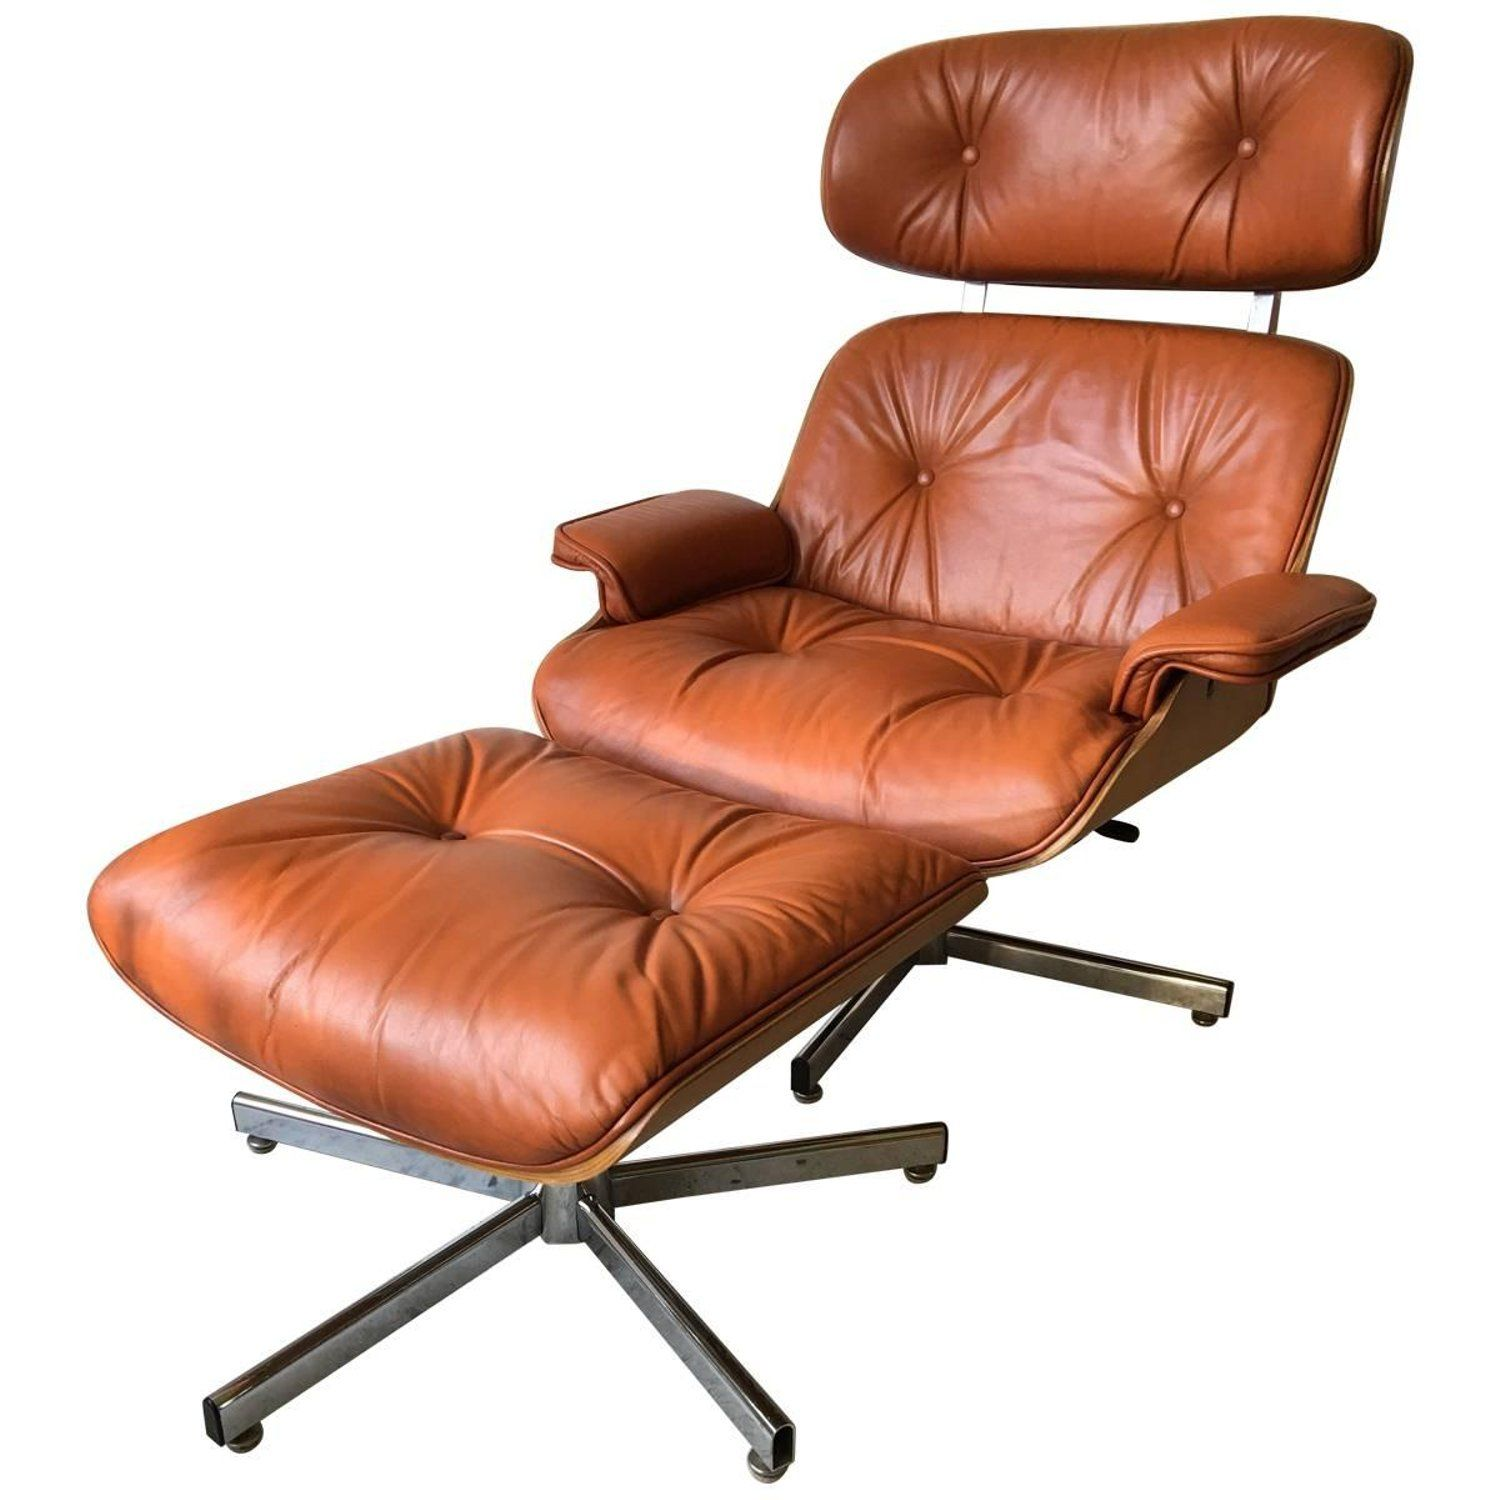 Pleasing Vintage Italian Eames Style Lounge Chair Ottoman Set In Pdpeps Interior Chair Design Pdpepsorg